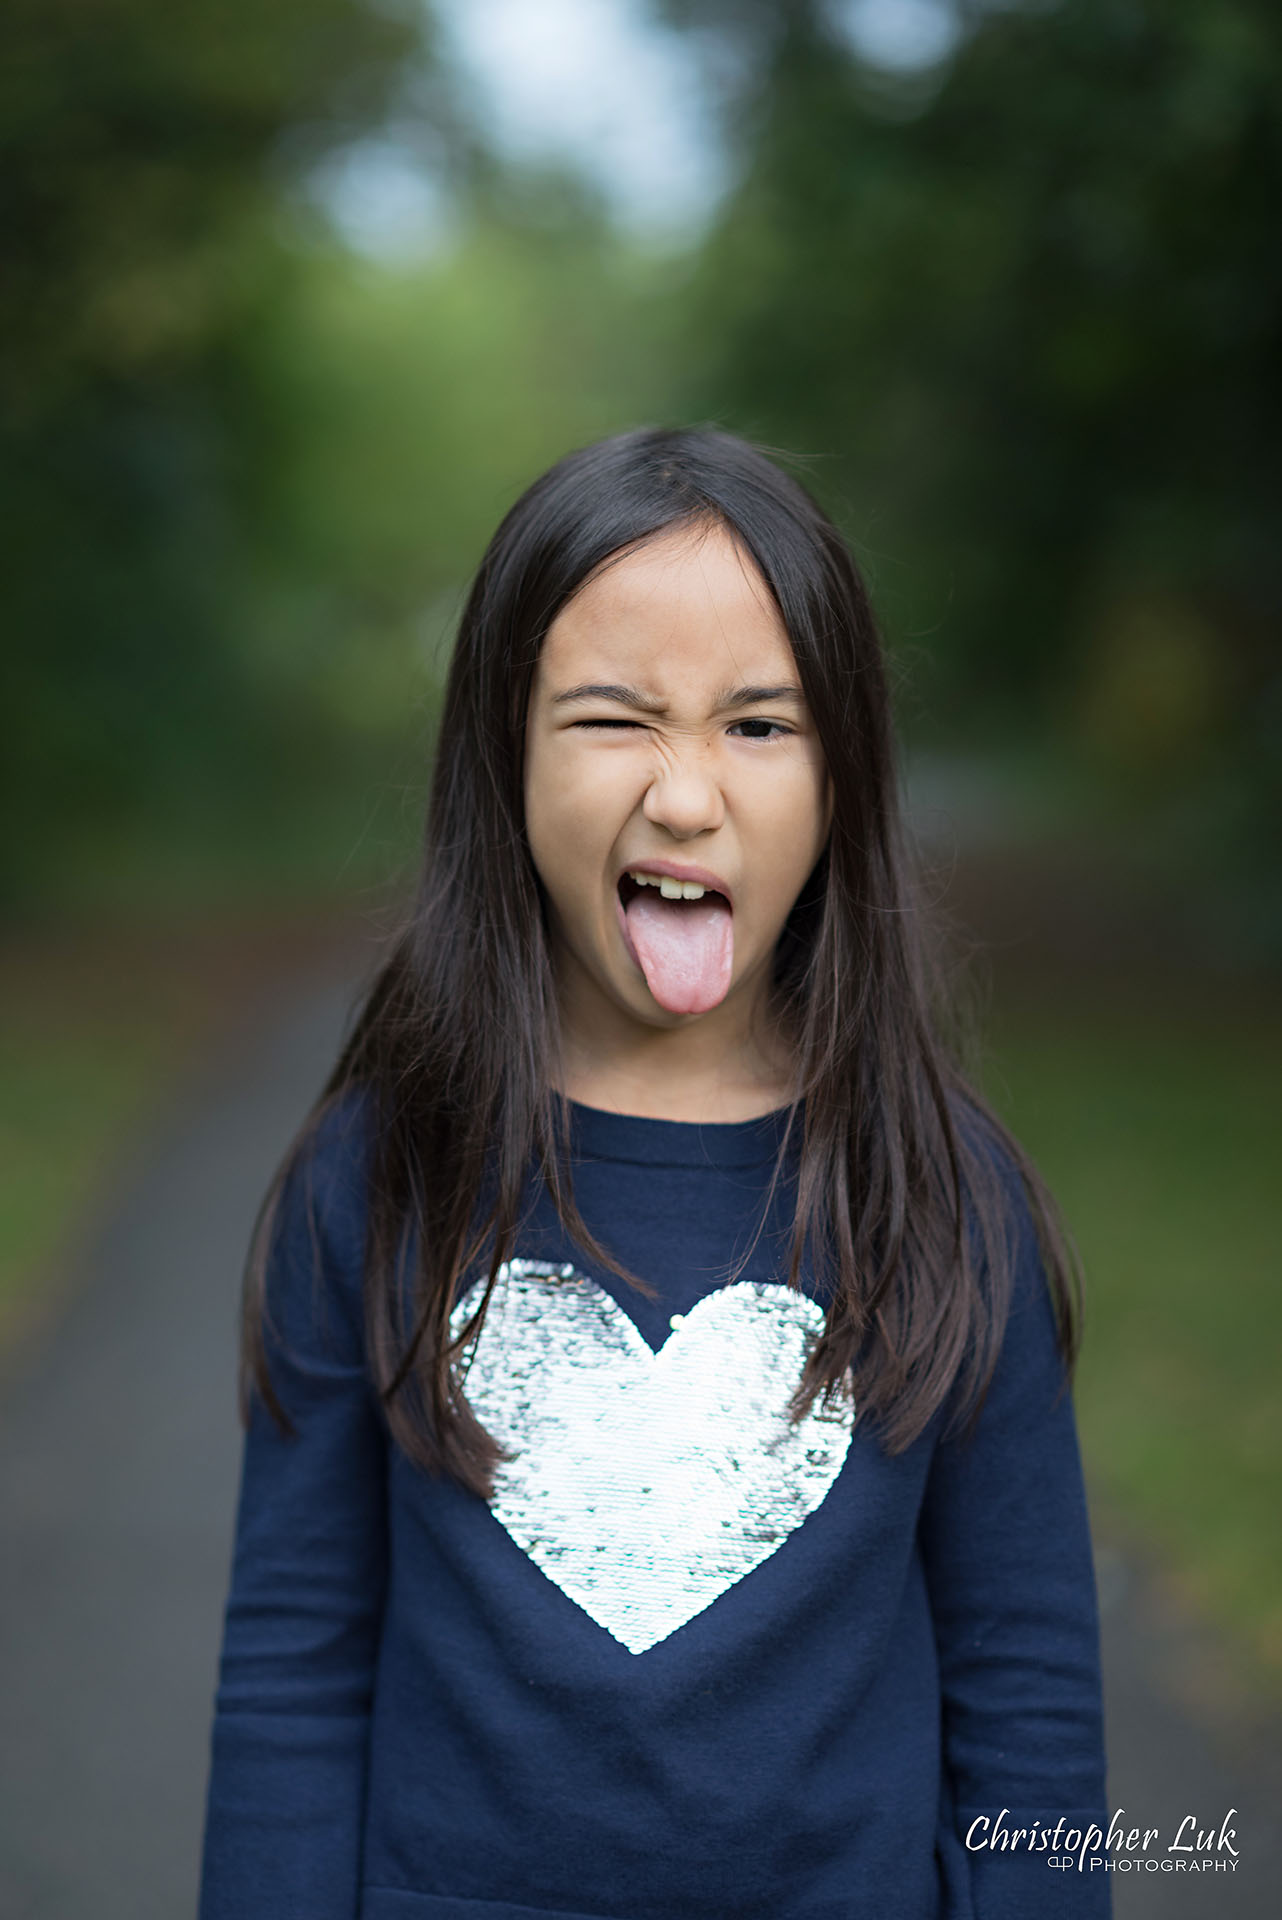 Christopher Luk Family Photographer Toronto Markham Candid Natural Photojournalistic Daughter Sister Funny Face